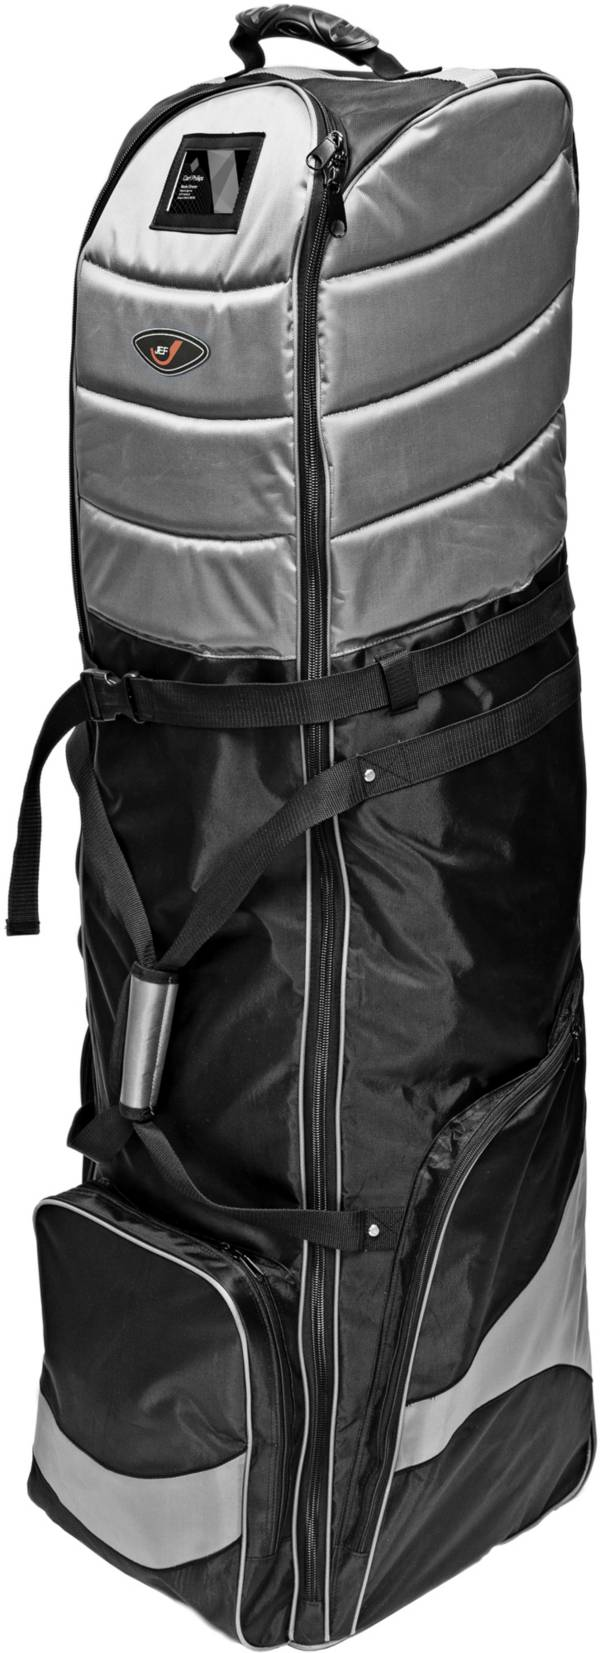 JEF World of Golf Deluxe Travel Cover product image